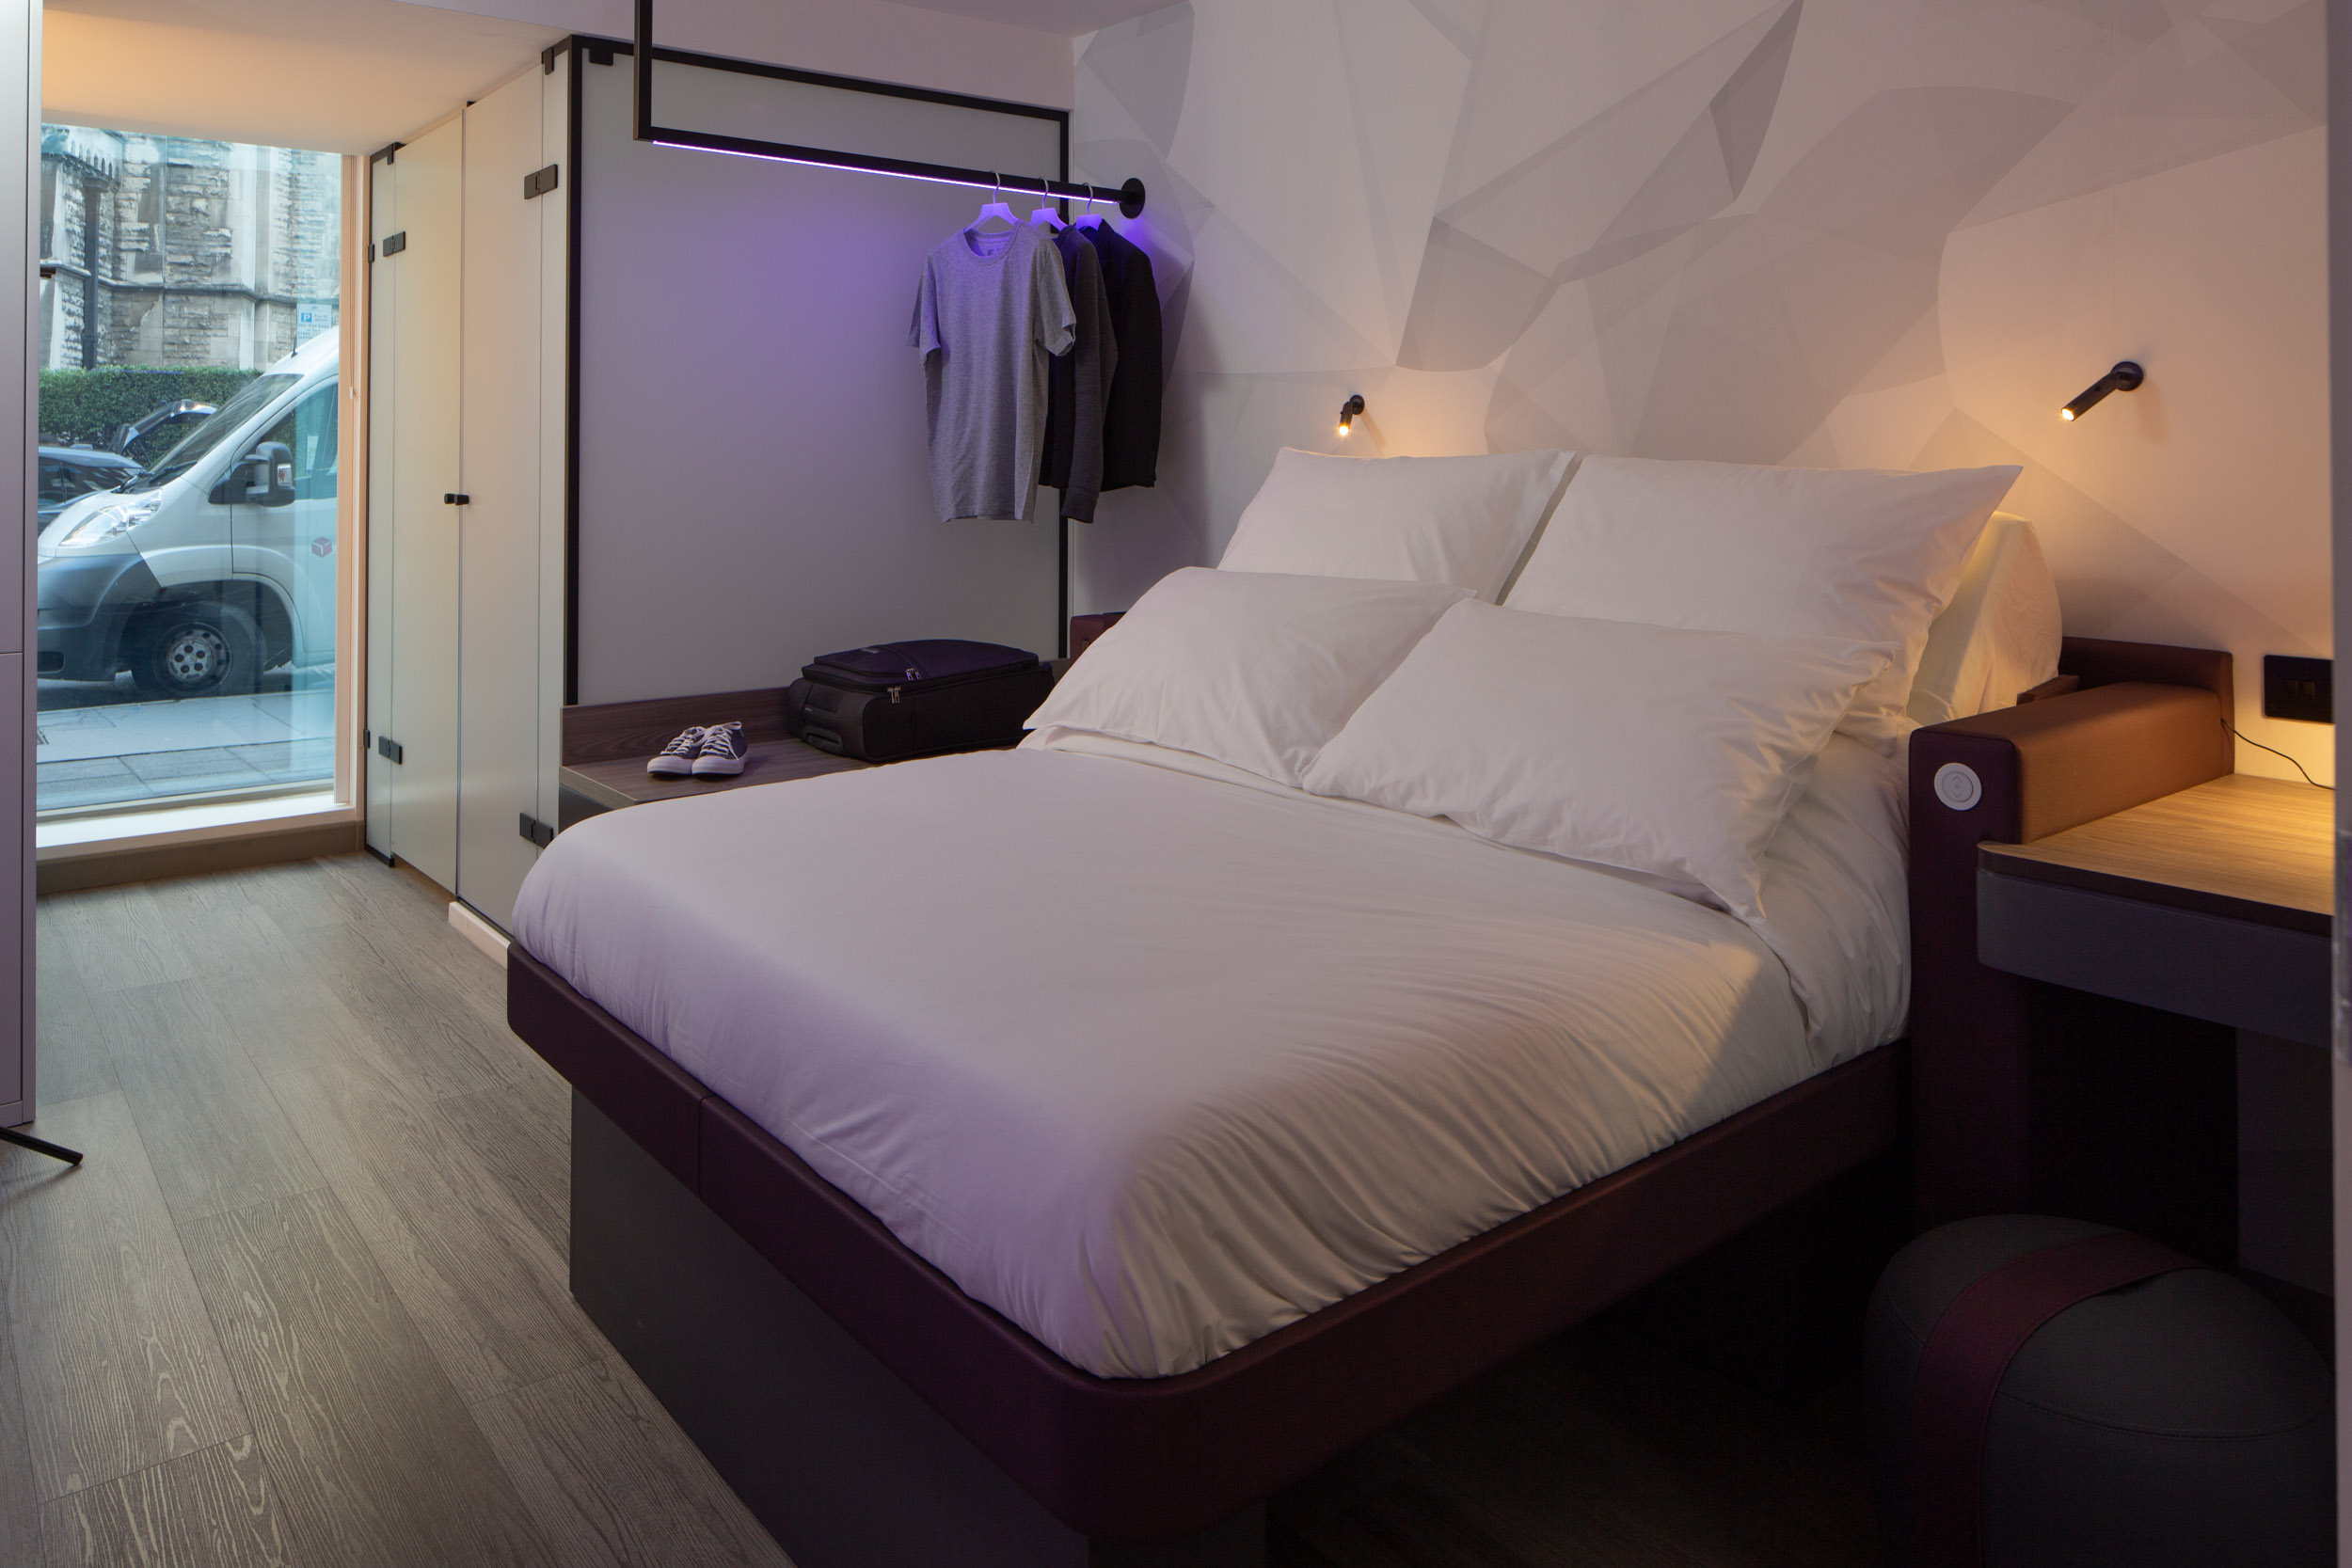 Yotel showroom 20182V0A9835.jpg